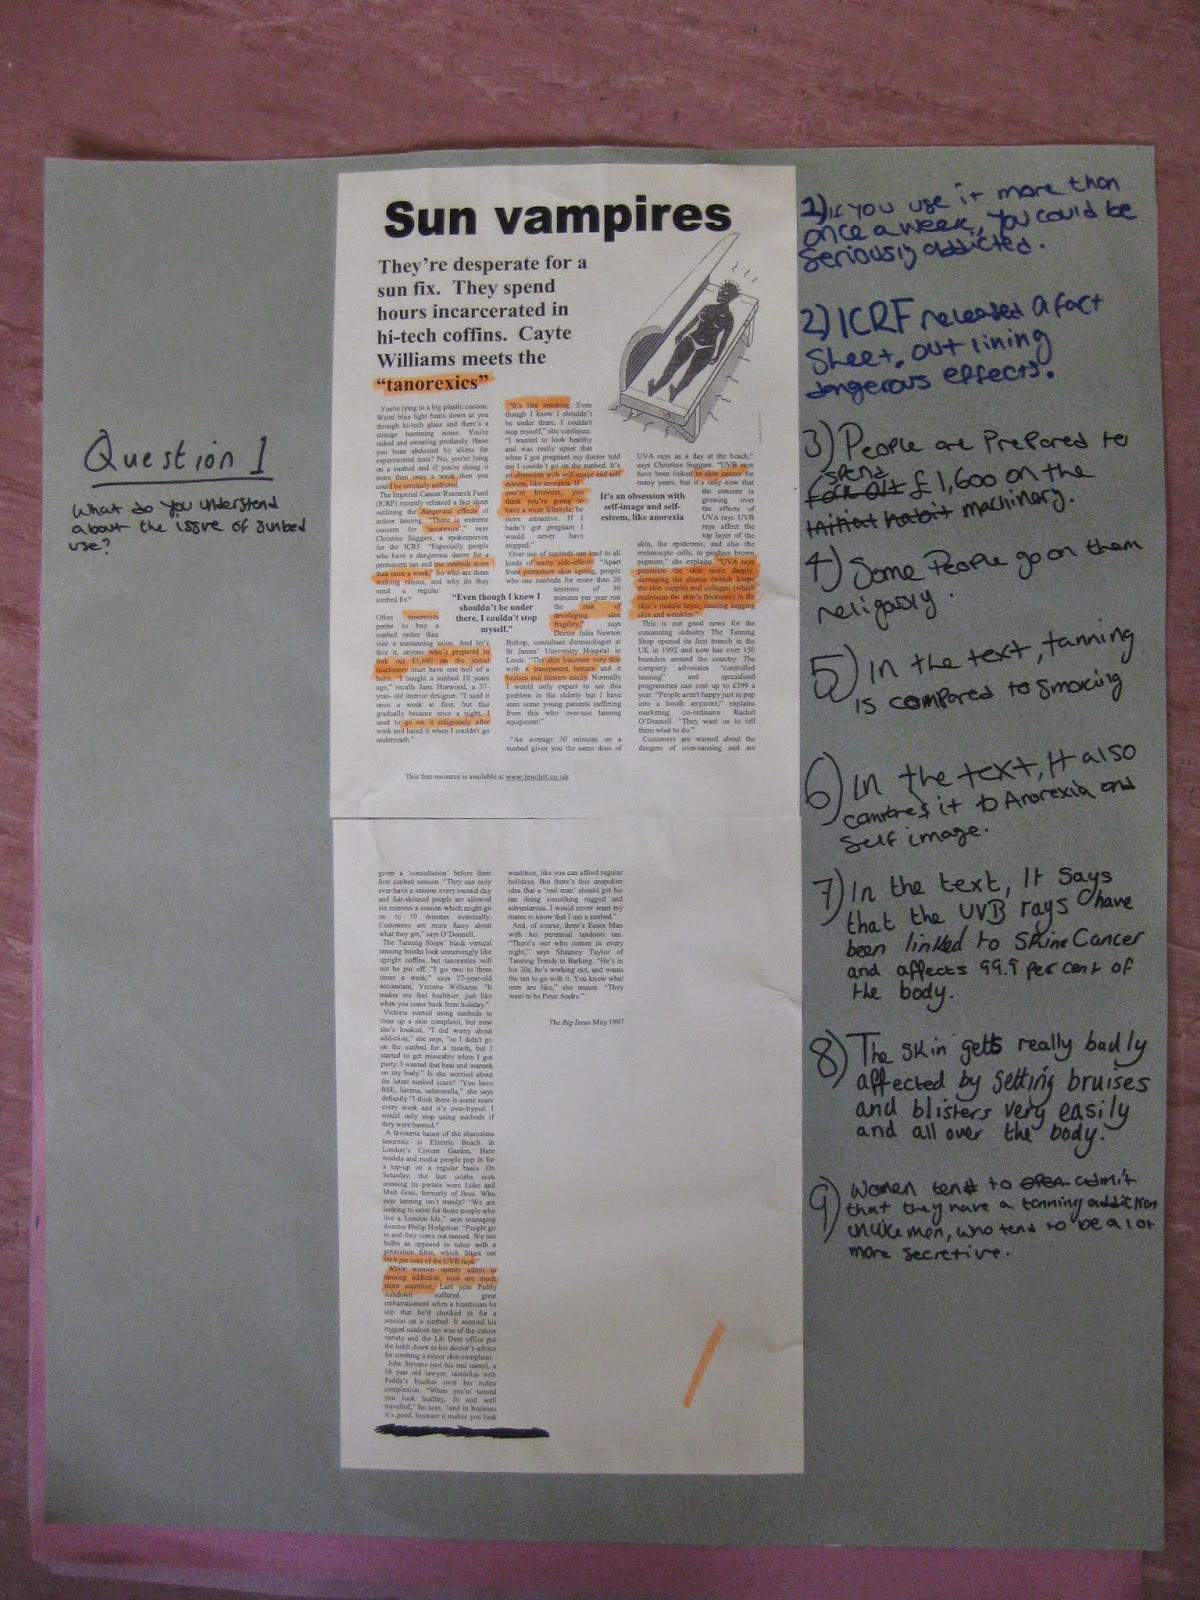 sun vampires possible questions Essay on sun vampires may becaome possible soon expressionist film of 'nosferatu' and turned it into post modernist text that questions reality.